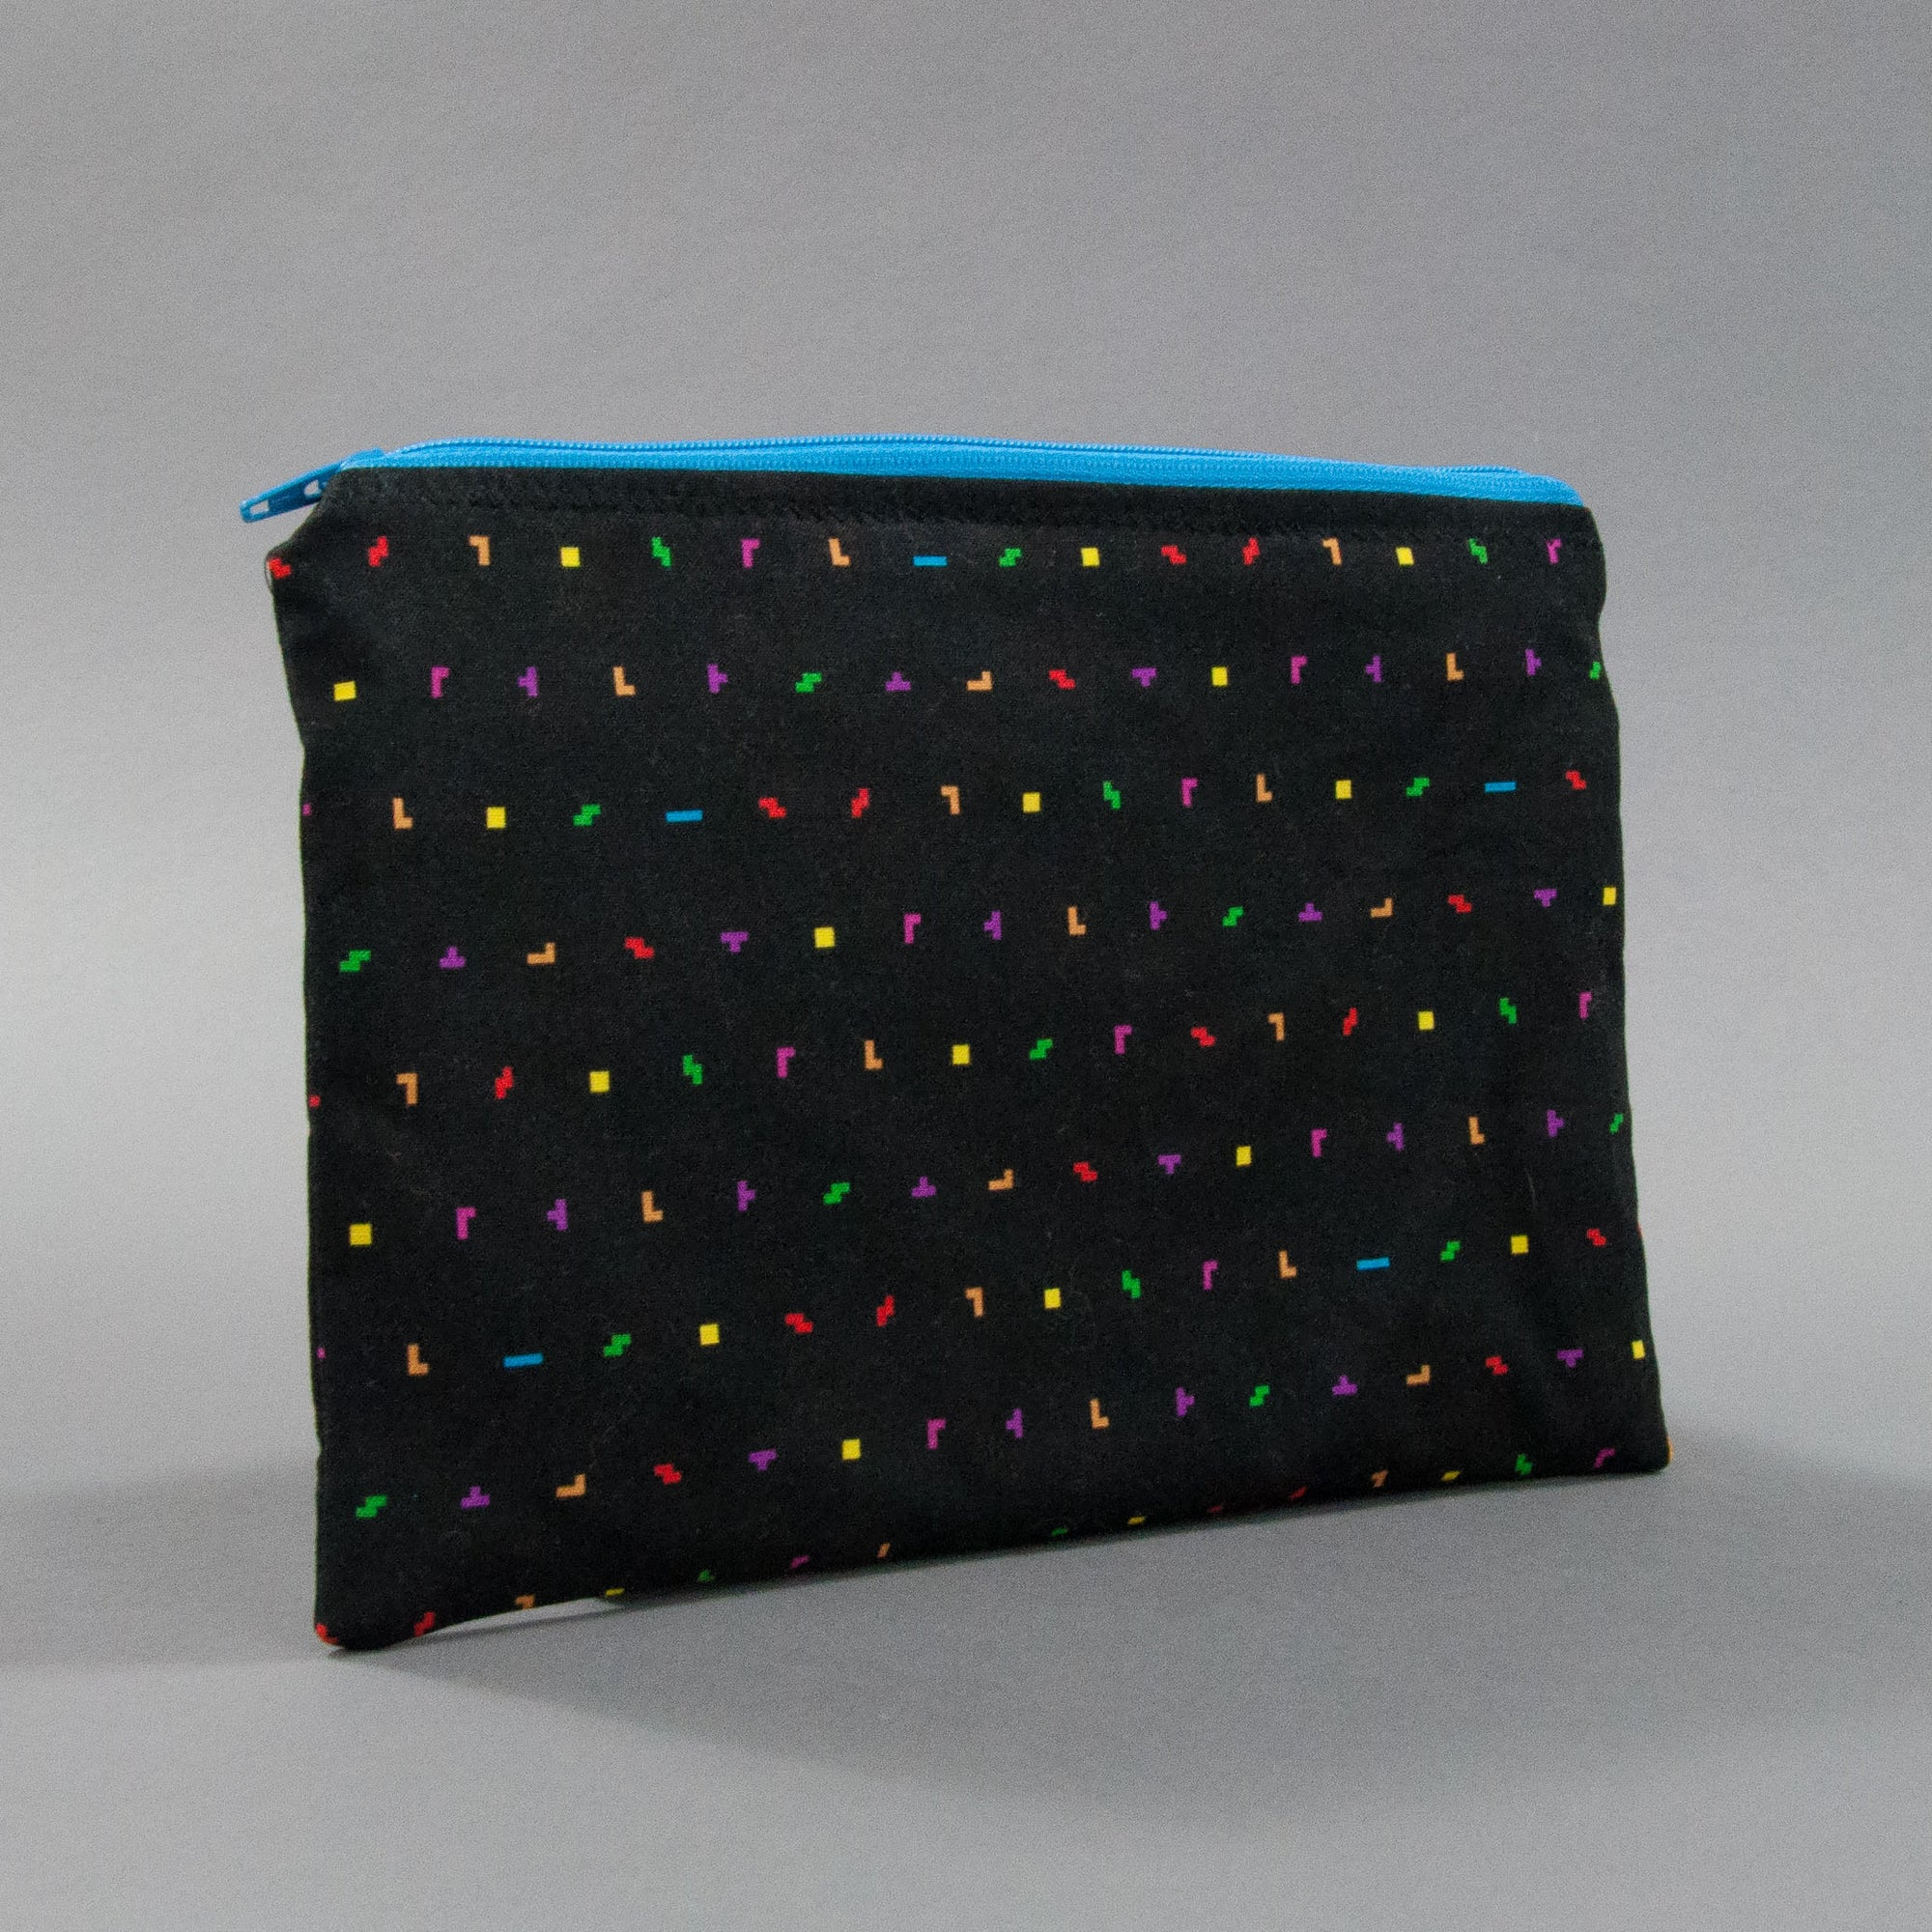 Mini Tetris Pieces Zippy Bag, Zippy Bag, - MarshMueller